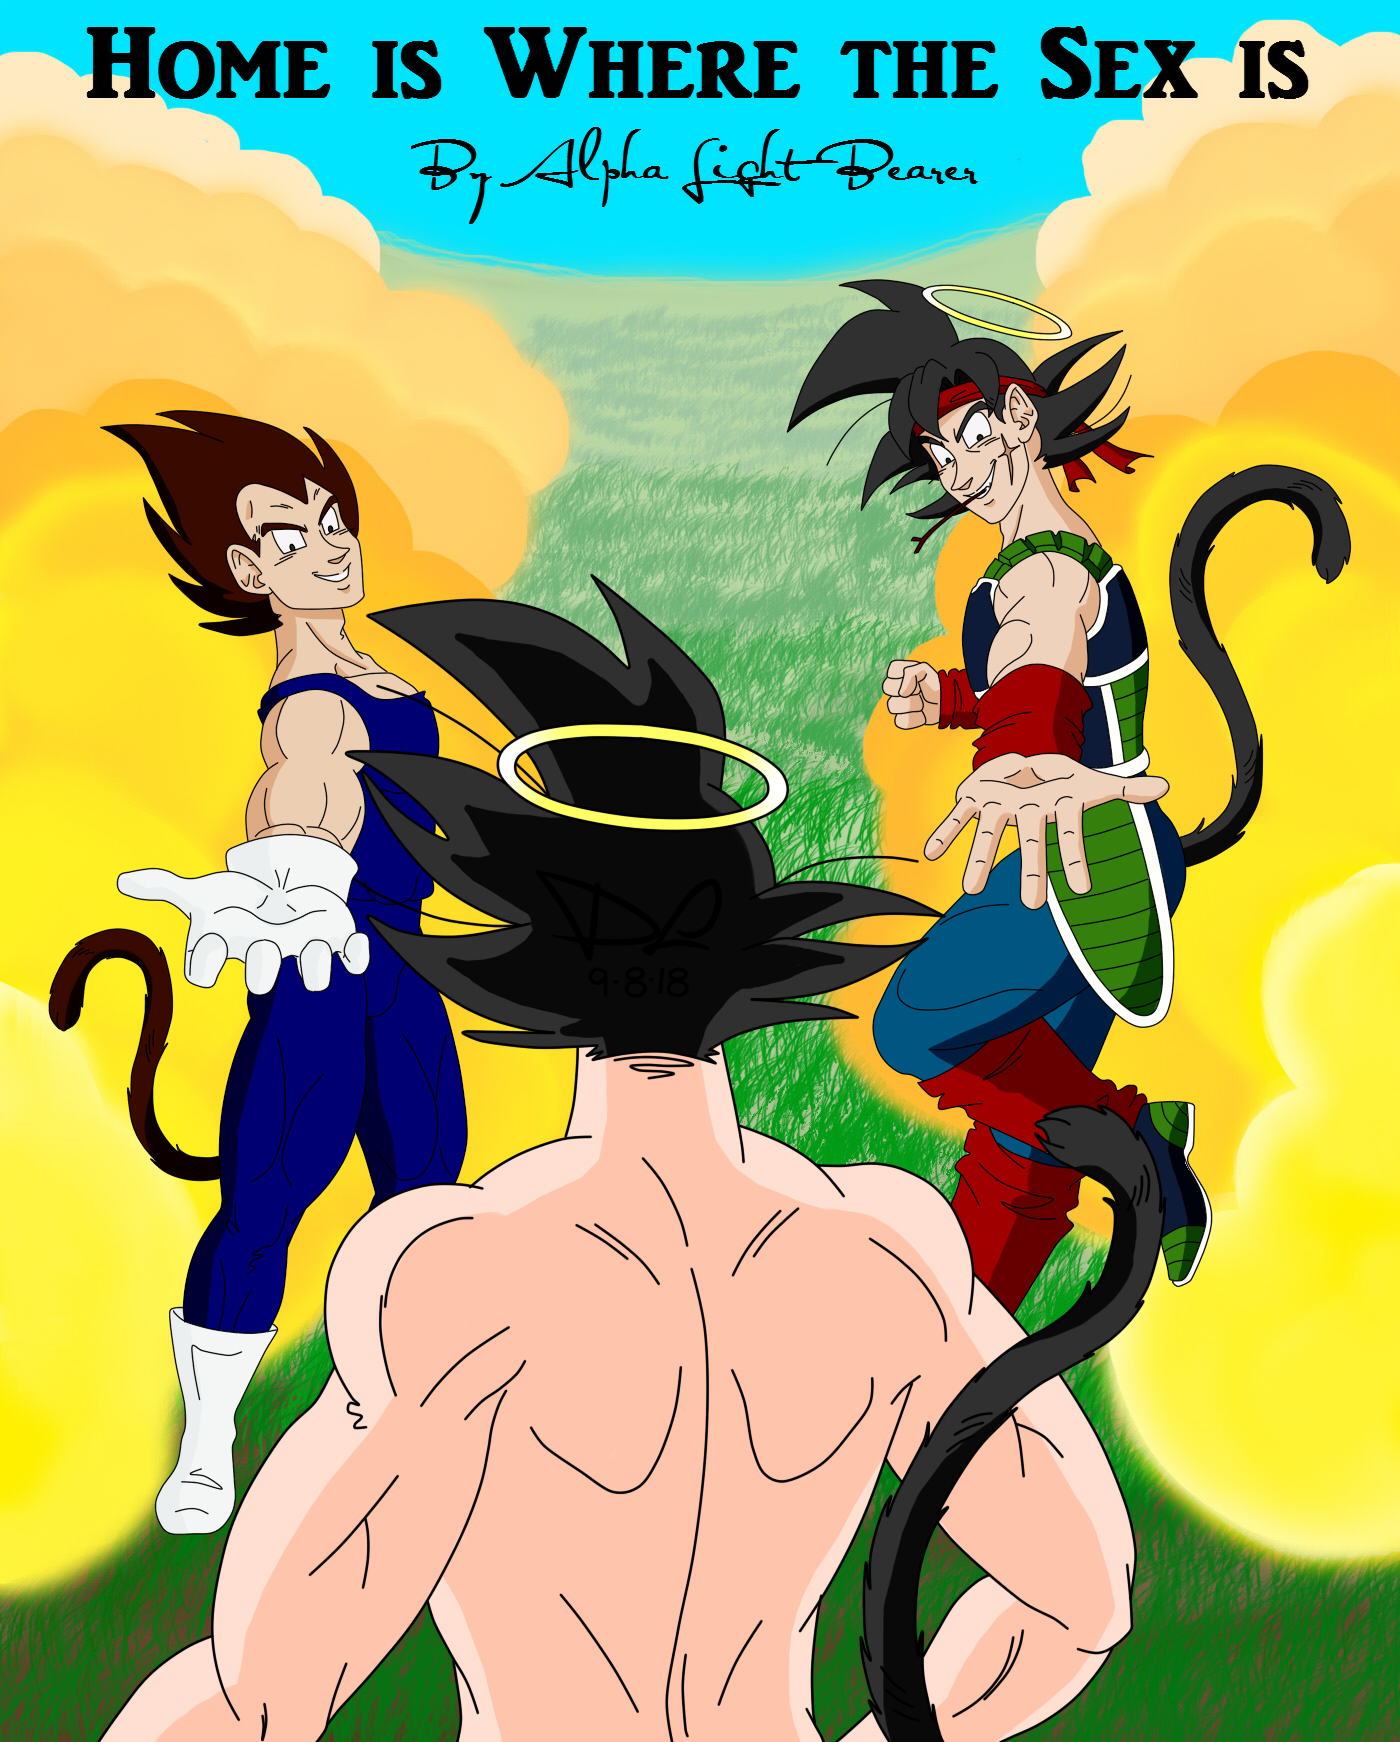 Home Is Where The Sex Is - Boxer  Rice Dbz Fanfic, Art -2126